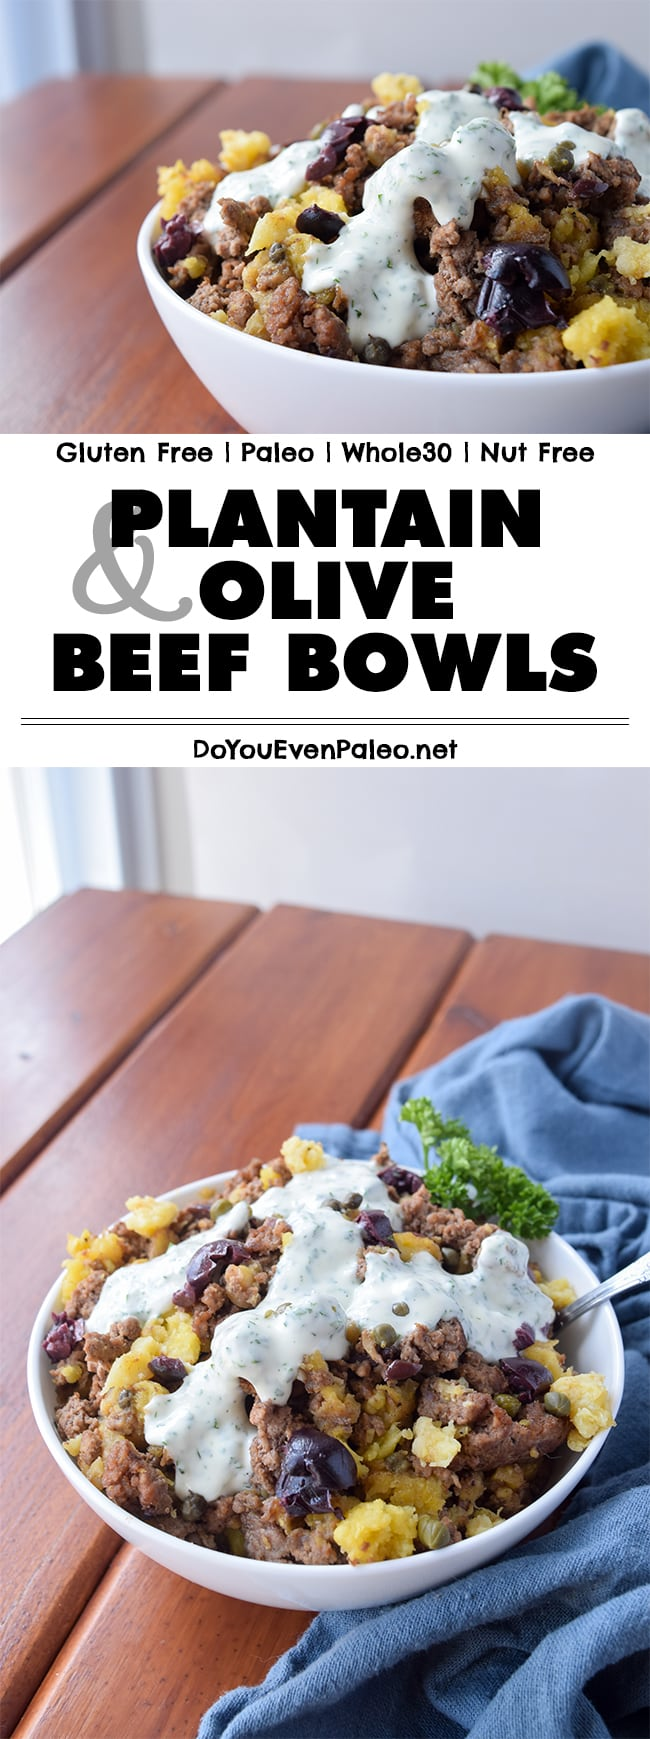 Sick of eggs for breakfast? You've got to try these plantain & olive beef bowls! Gluten free, paleo, and Whole30 with AIP substitutions. | DoYouEvenPaleo.net